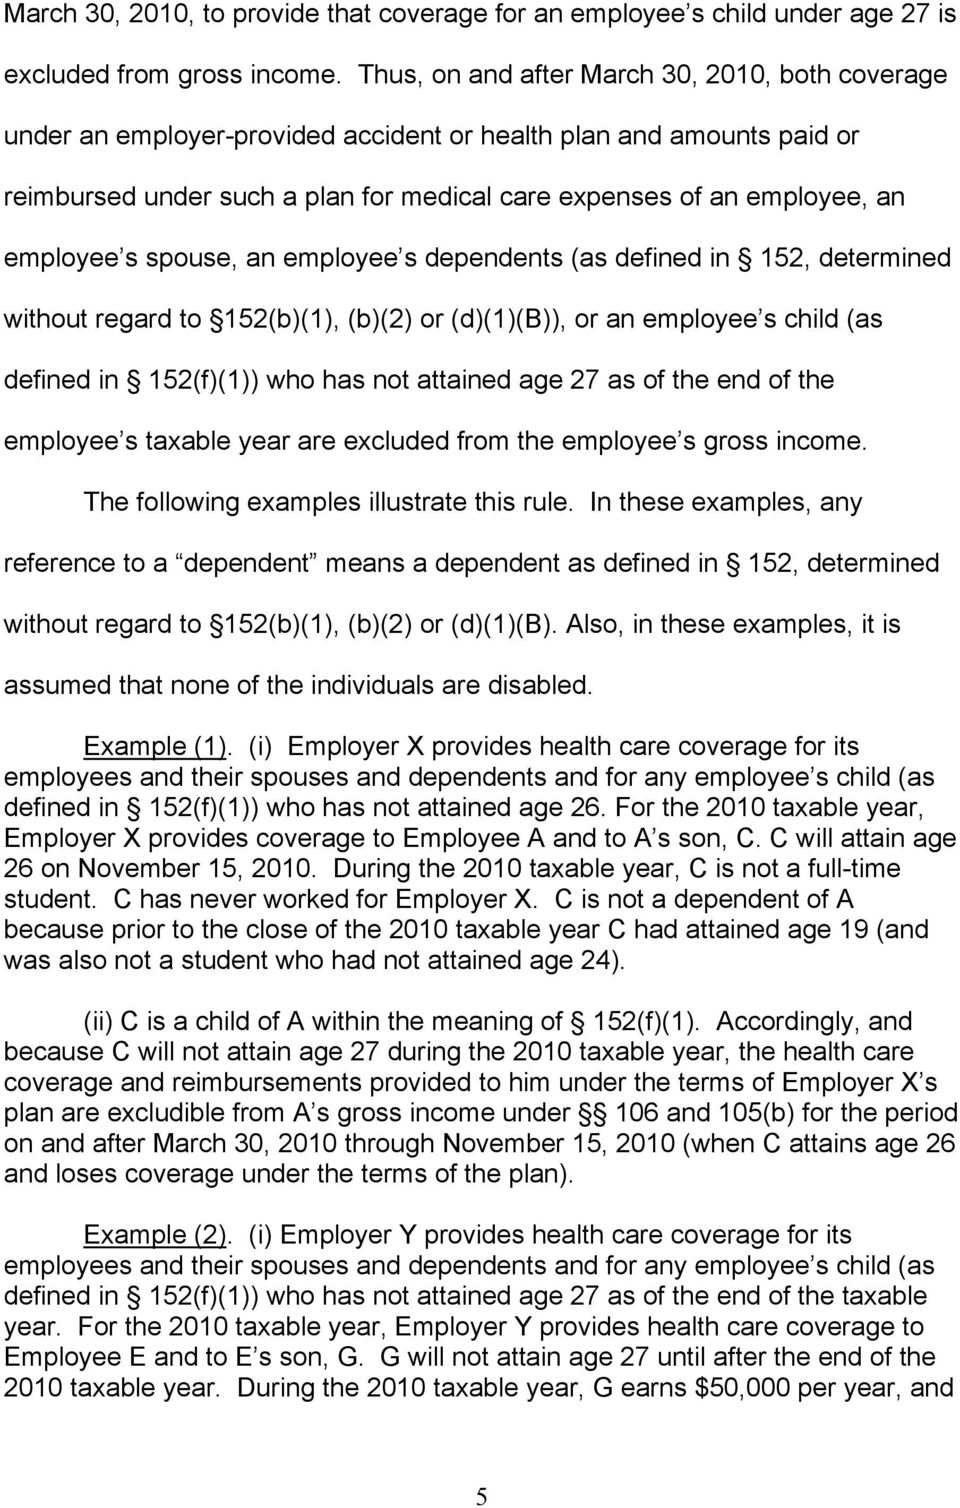 employee s spouse, an employee s dependents (as defined in 152, determined without regard to 152(b)(1), (b)(2) or (d)(1)(b)), or an employee s child (as defined in 152(f)(1)) who has not attained age